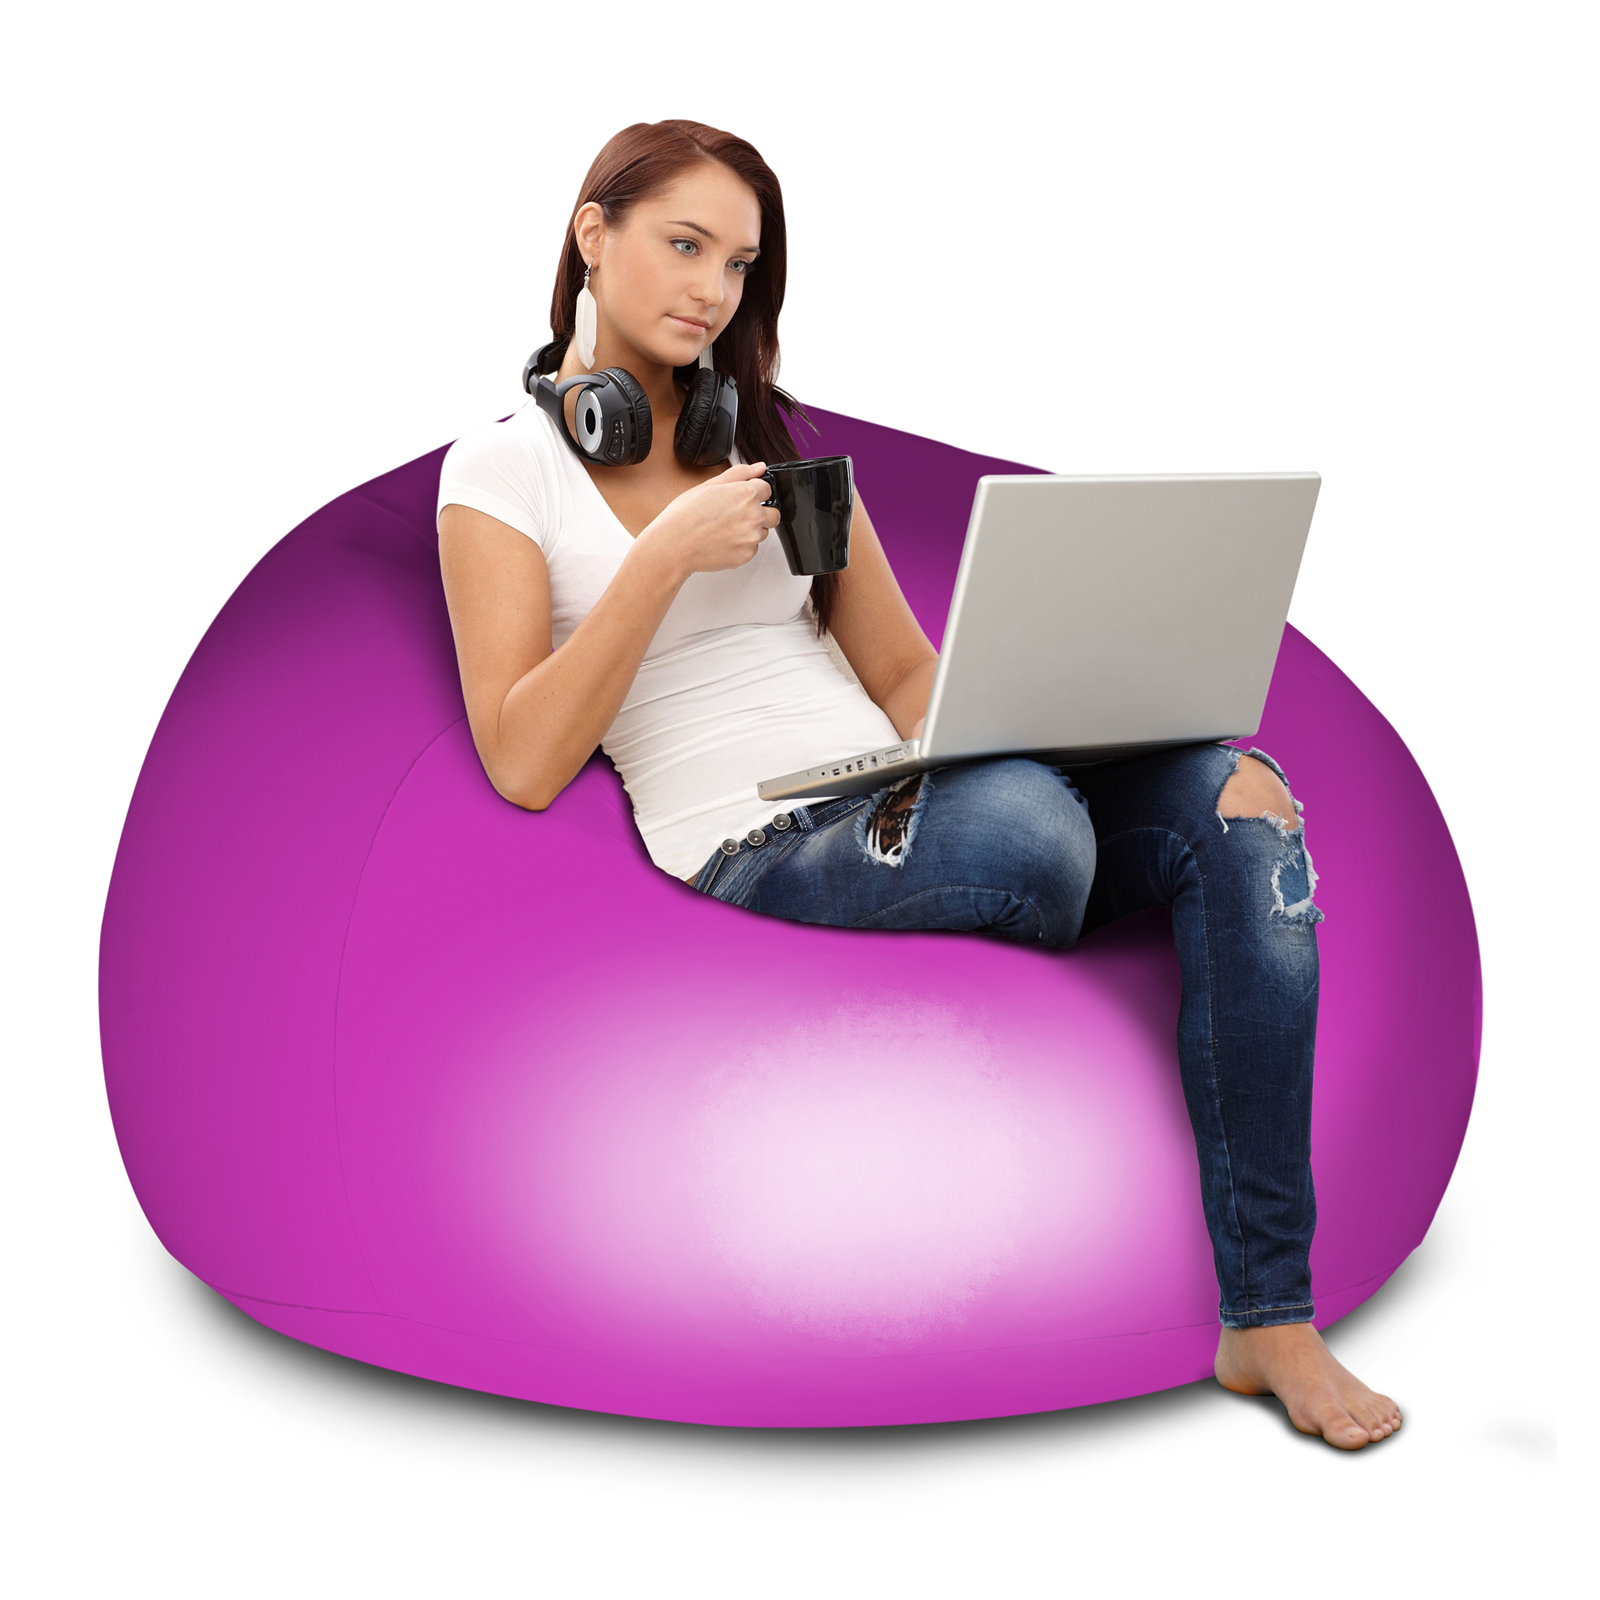 inflatable chair canada savannah's cover rentals & events